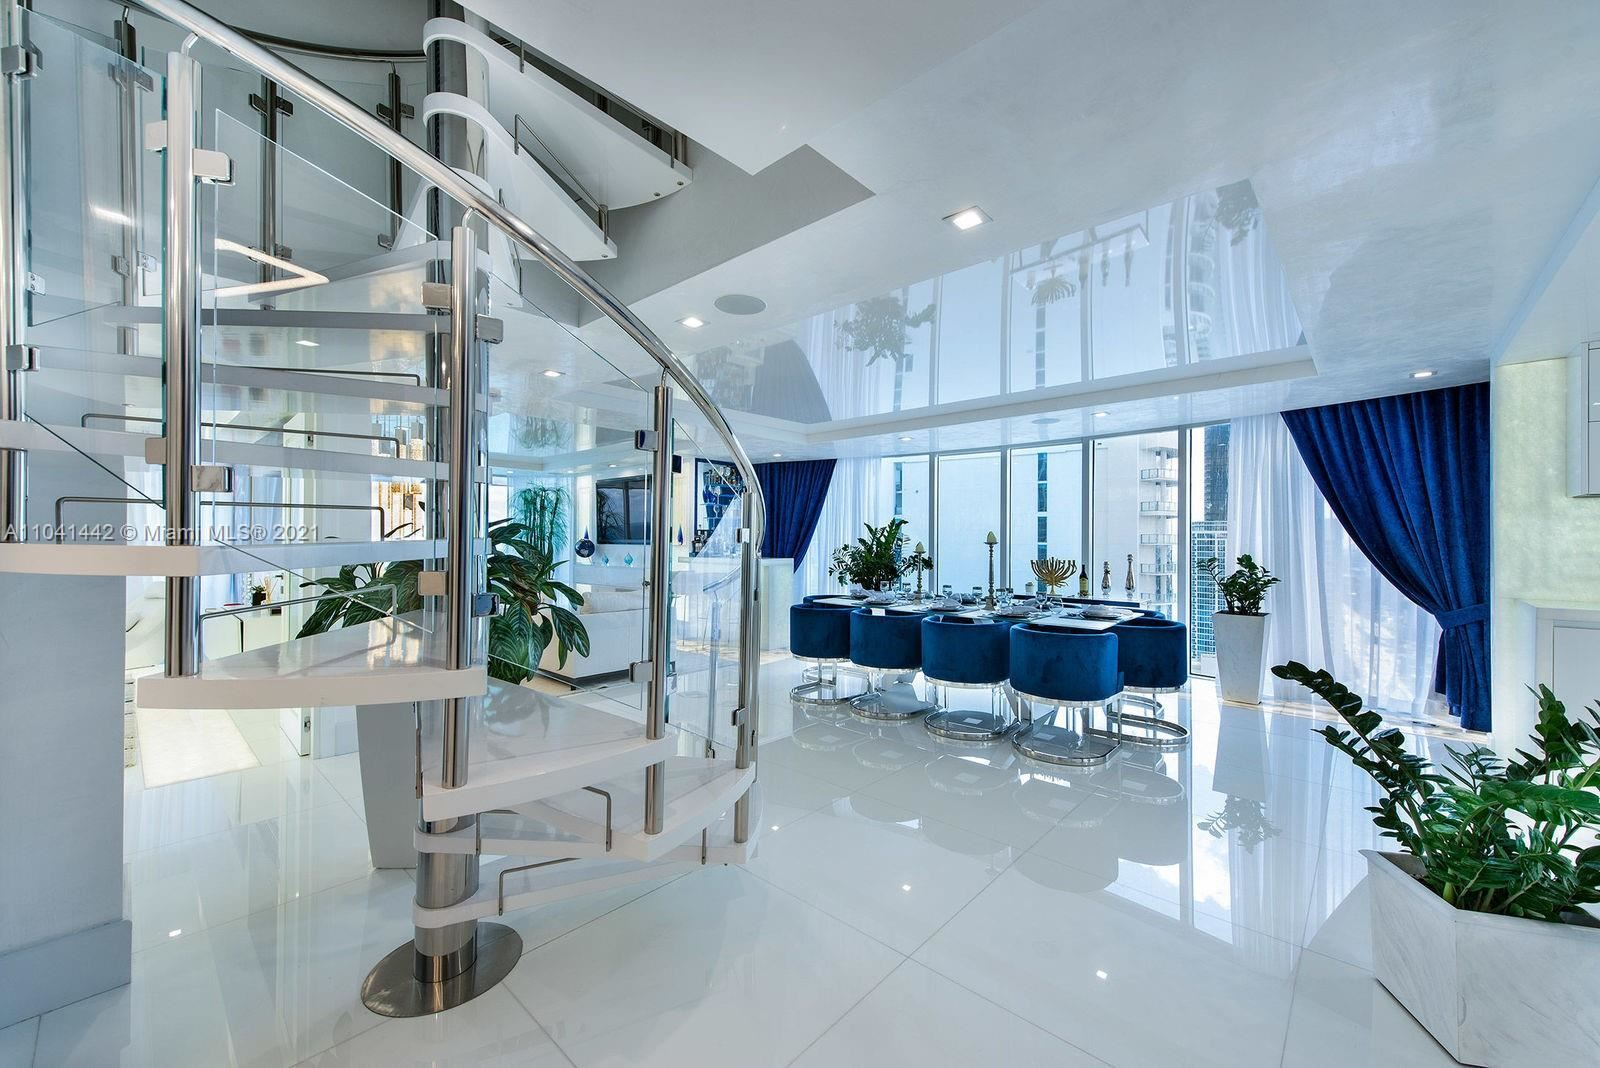 17555 Collins Ave - 2,274 FT2* #TS-1 Roof Terrace, Sunny Isles, FL 33160 - #: A11041442